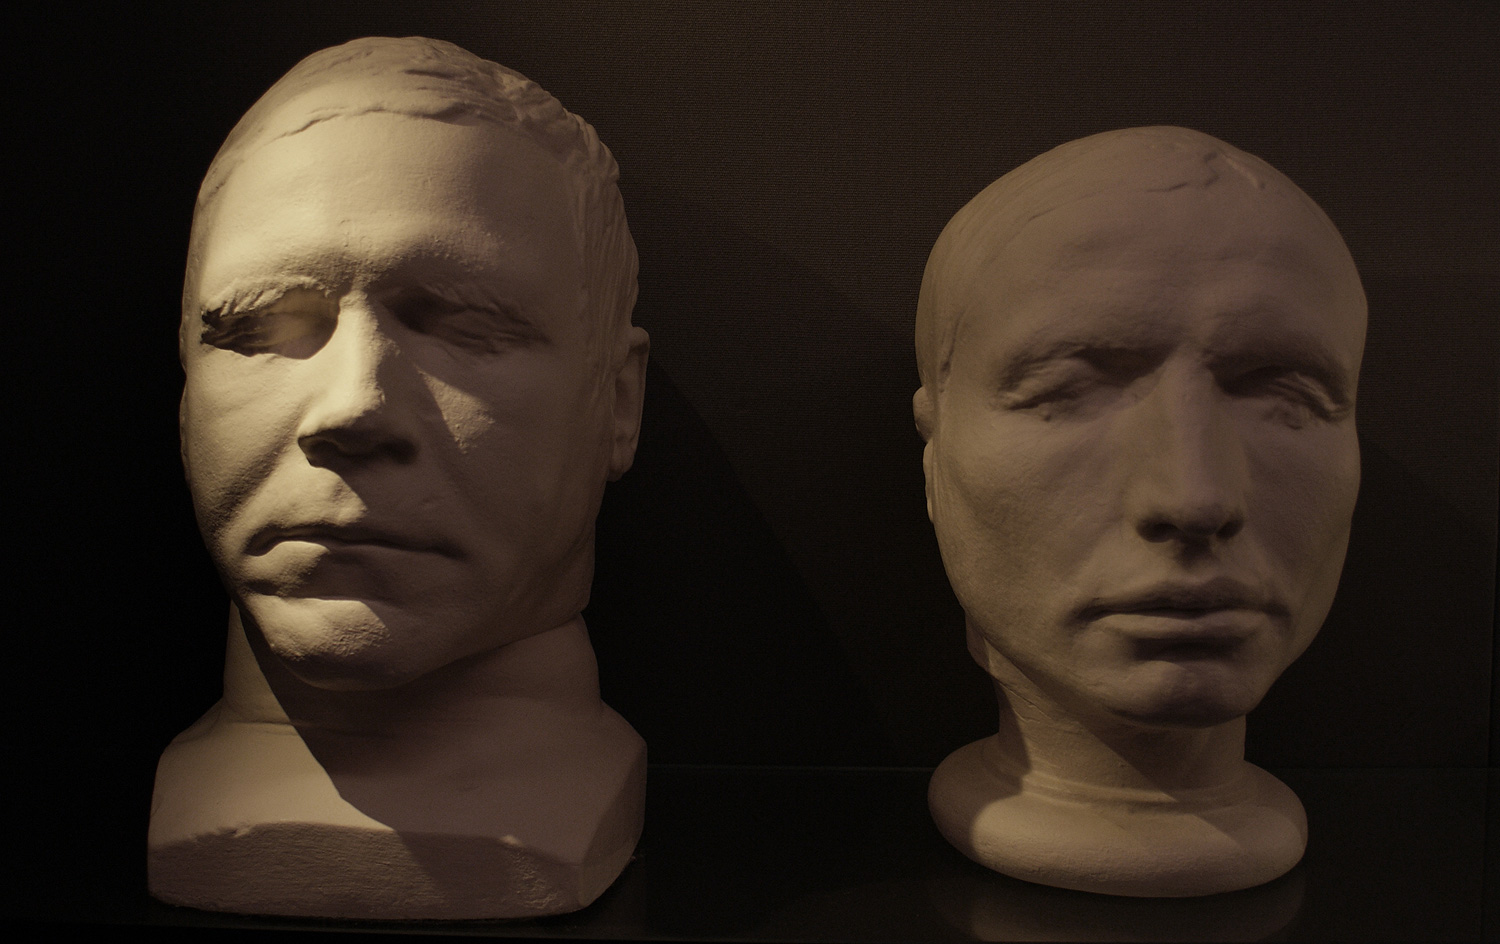 The life and death masks of Burke and Hare displayed on a shelf